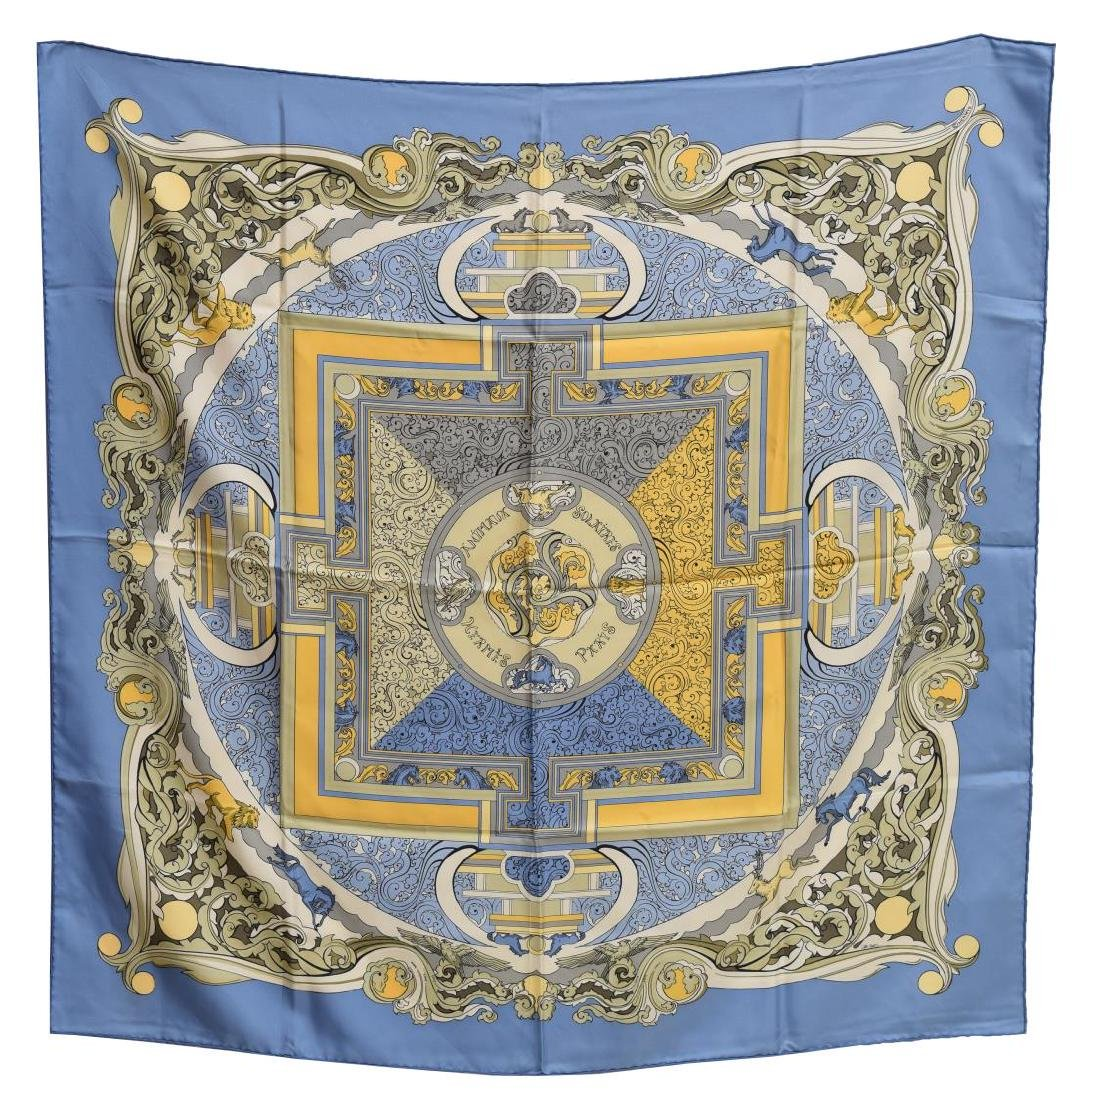 HERMES SILK TWILL SCARF, 'ANIMAUX SOLAIRES'